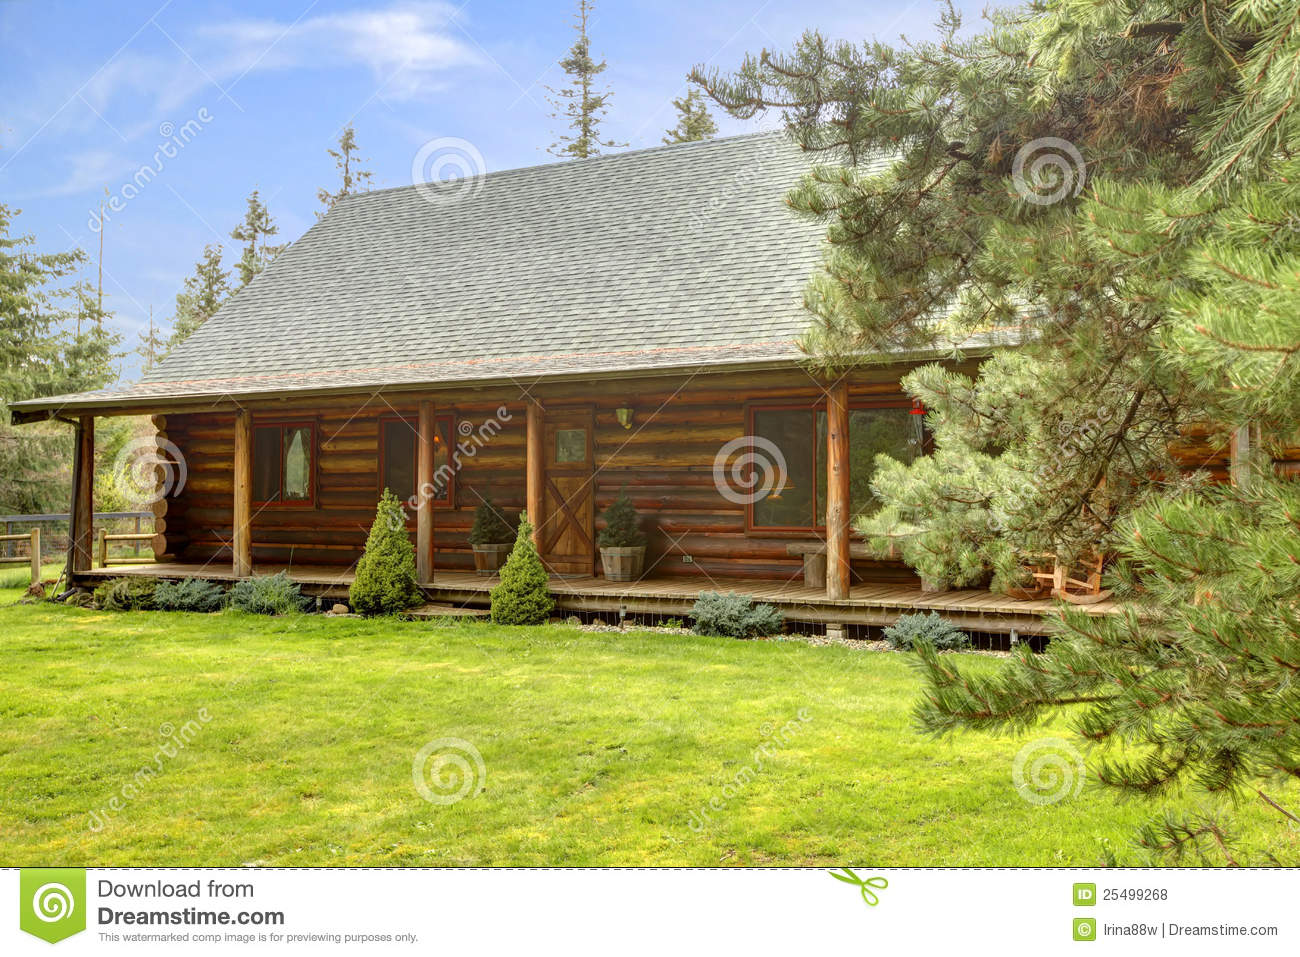 Log cabin on a lake royalty free stock photography image 7866317 - Rustic Log Cabin Front Porch Exterior Royalty Free Stock Photos